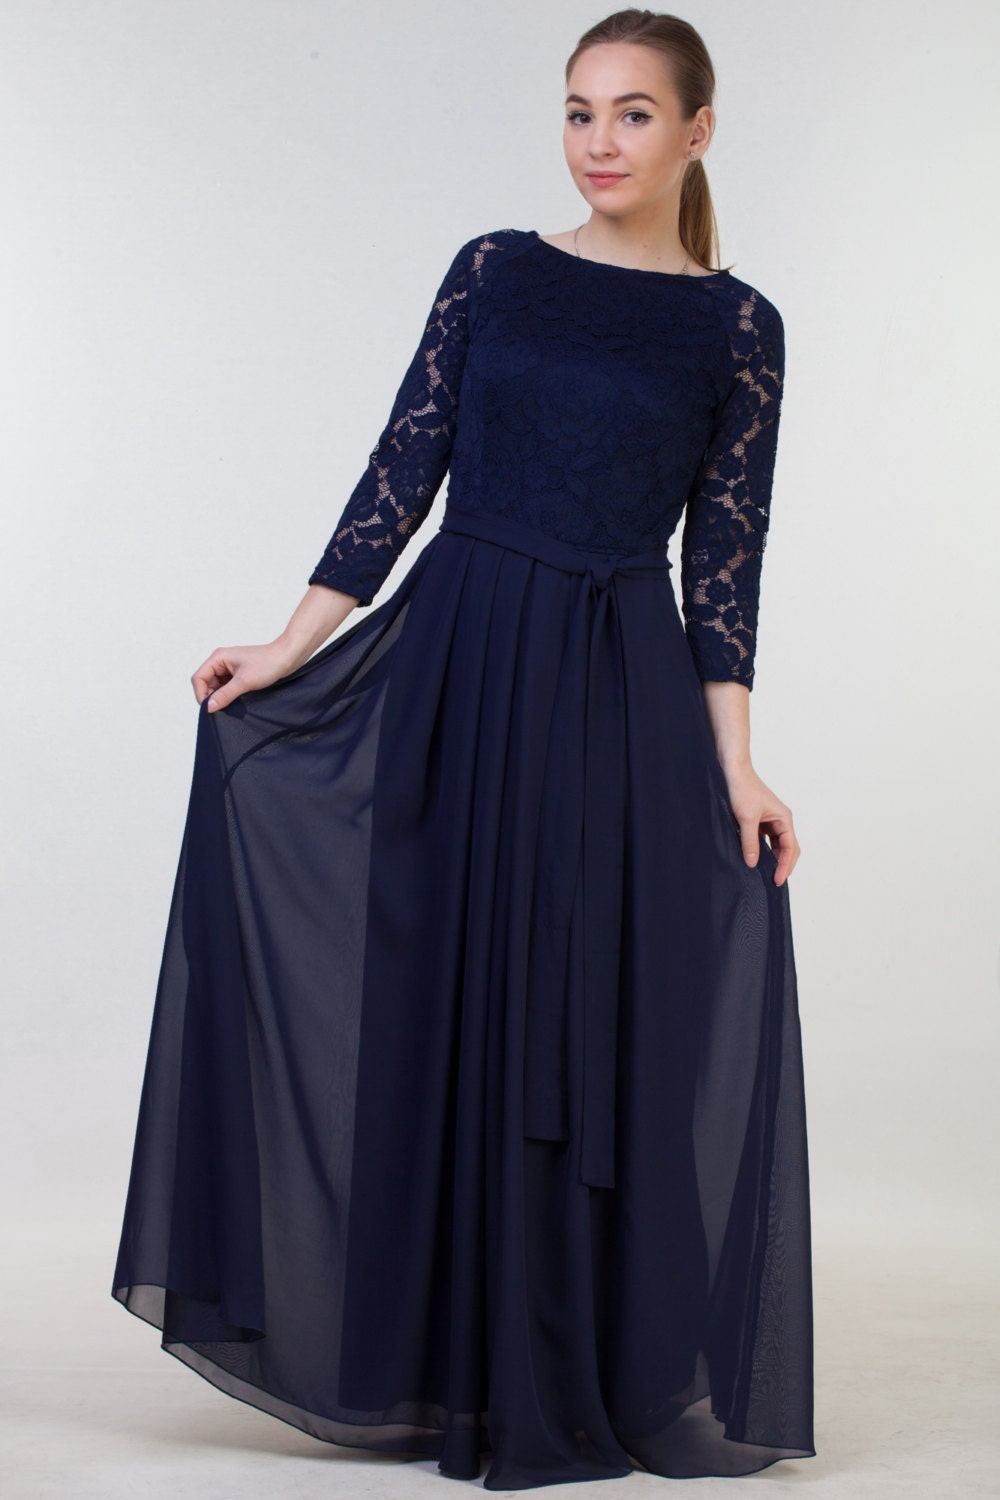 Long navy blue bridesmaid dress with sleeves navy blue lace details lace navy blue dress ombrellifo Gallery